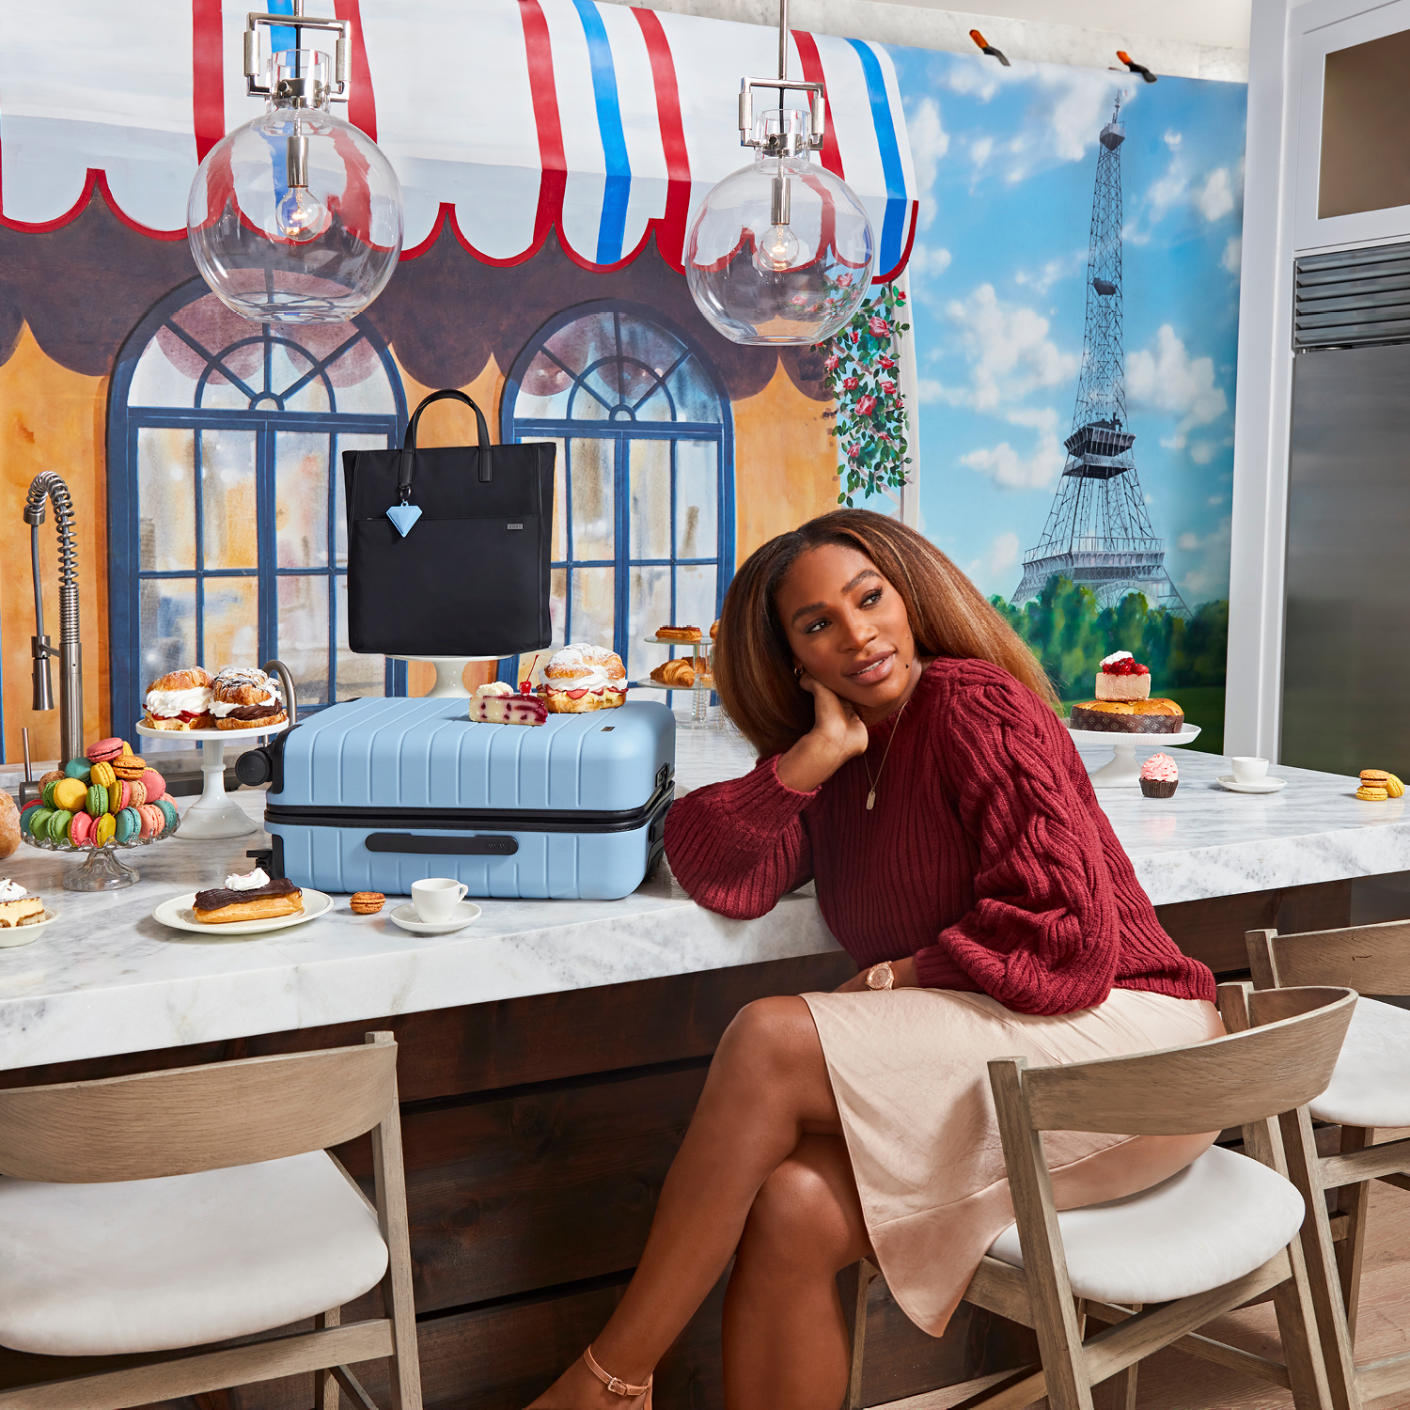 Serena Williams sitting in a cafe table with an Away suitcase in light blue on the table.